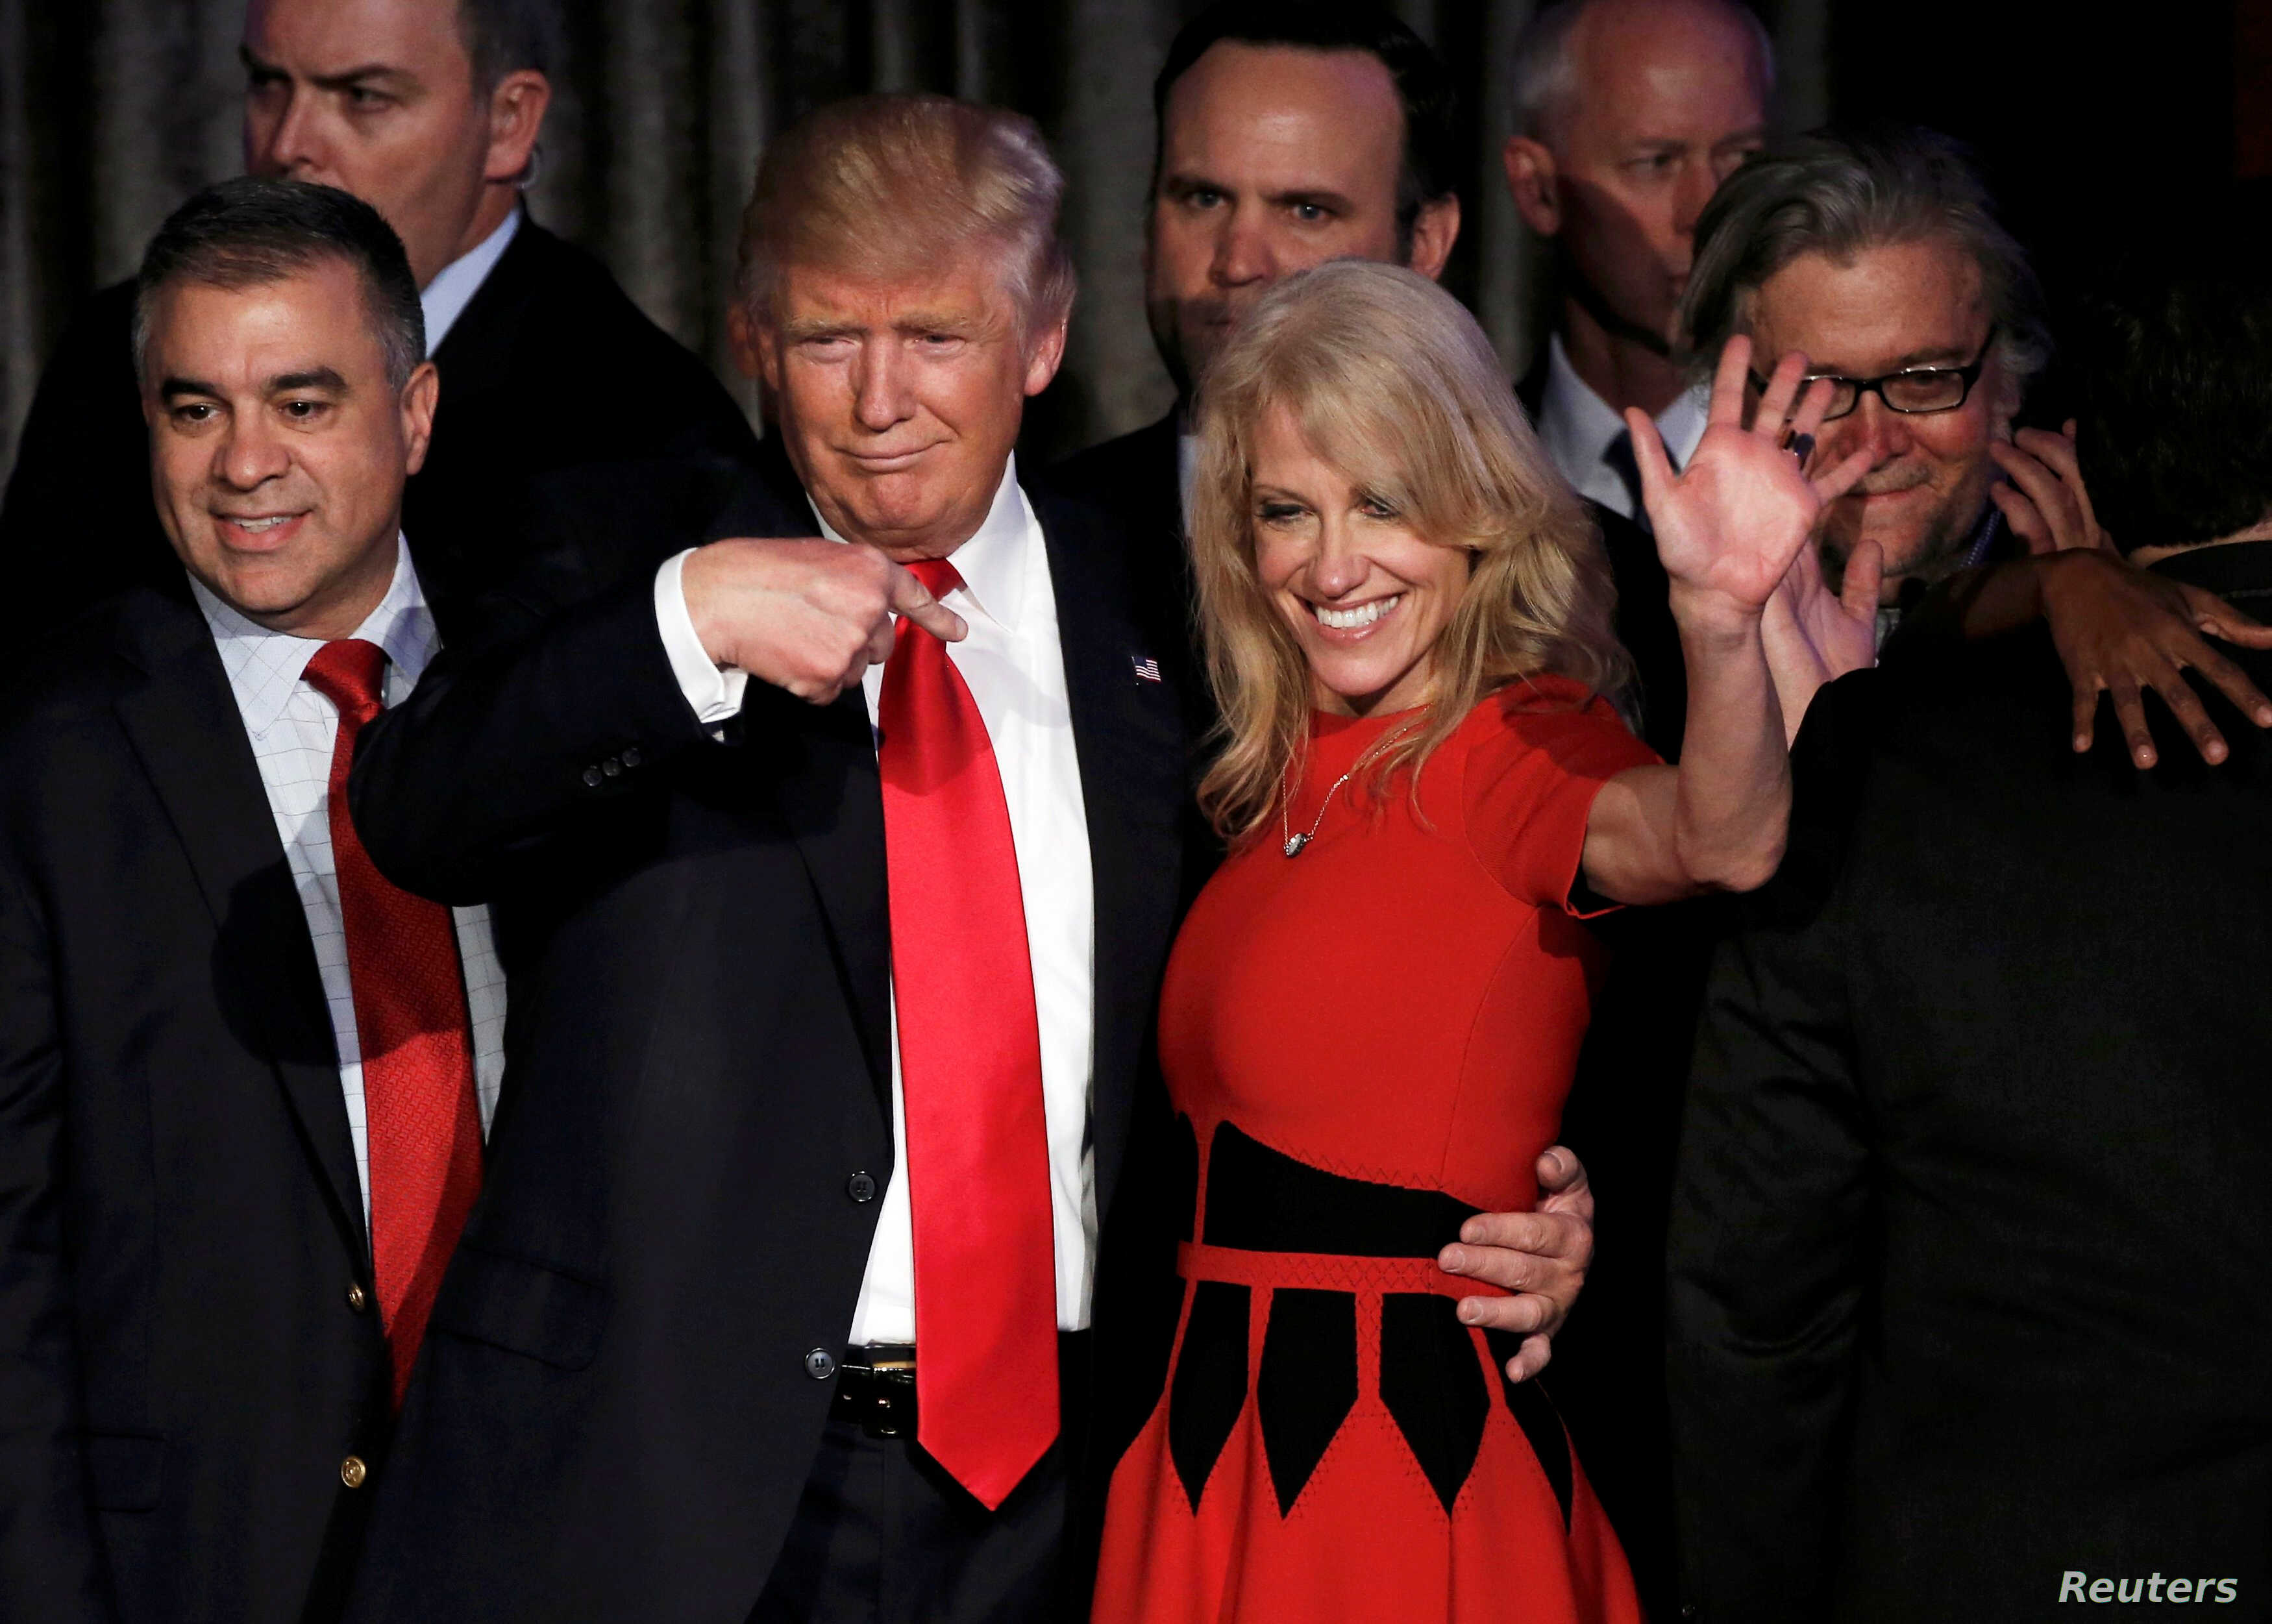 U.S. President-elect Donald Trump and his campaign manager Kellyanne Conway greet supporters during his election night rally in Manhattan, New York, Nov. 9, 2016.